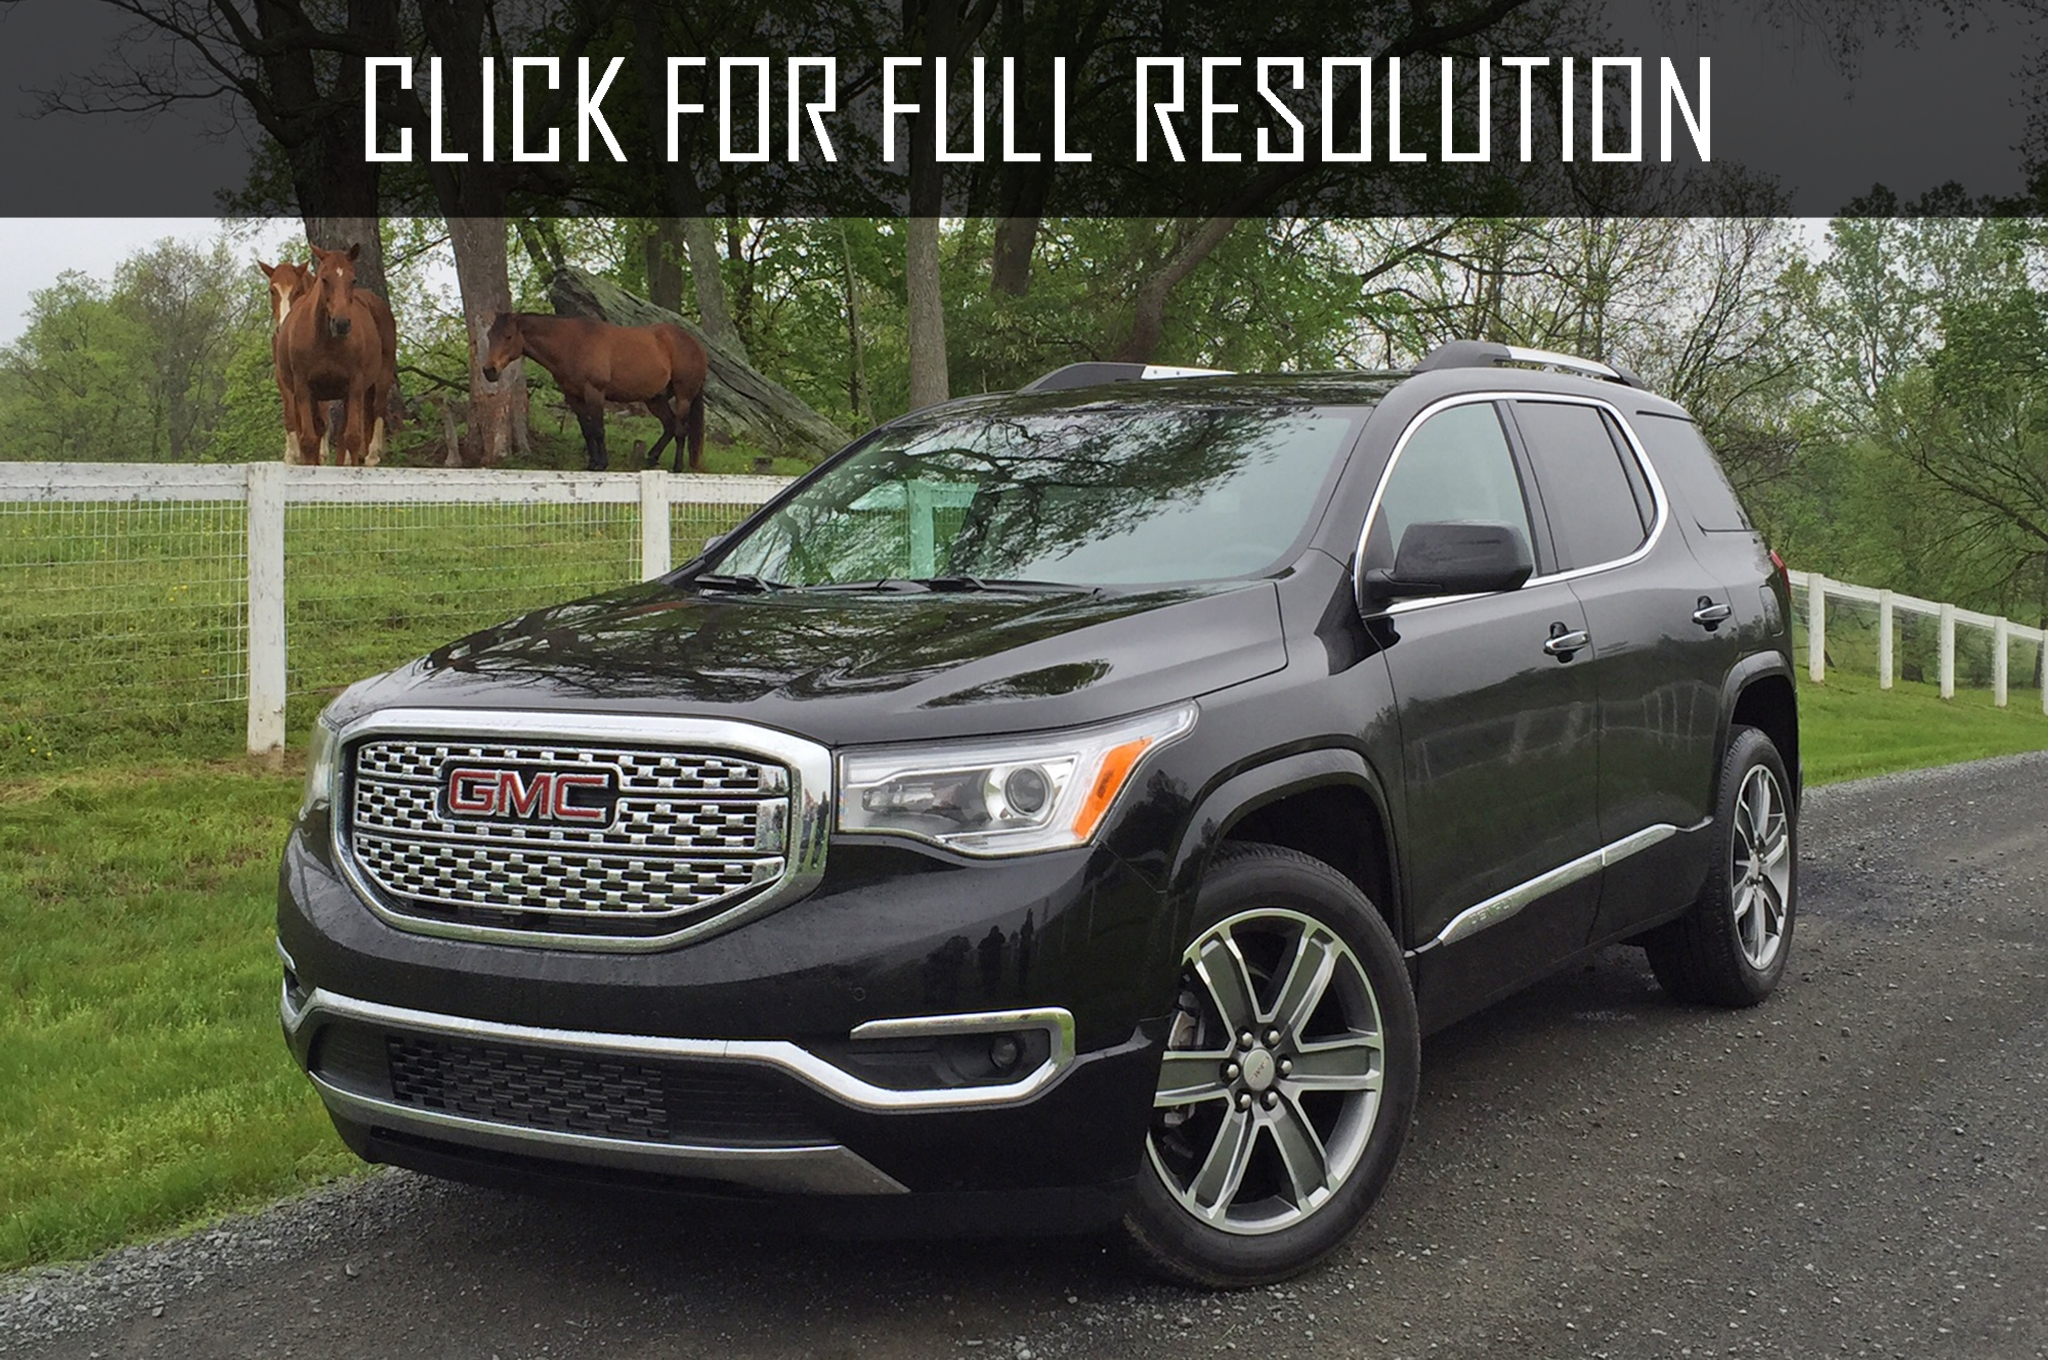 2017 Gmc Acadia Problems   Best new cars for 2018 2017 Gmc Acadia Problems Best New Cars For 2018